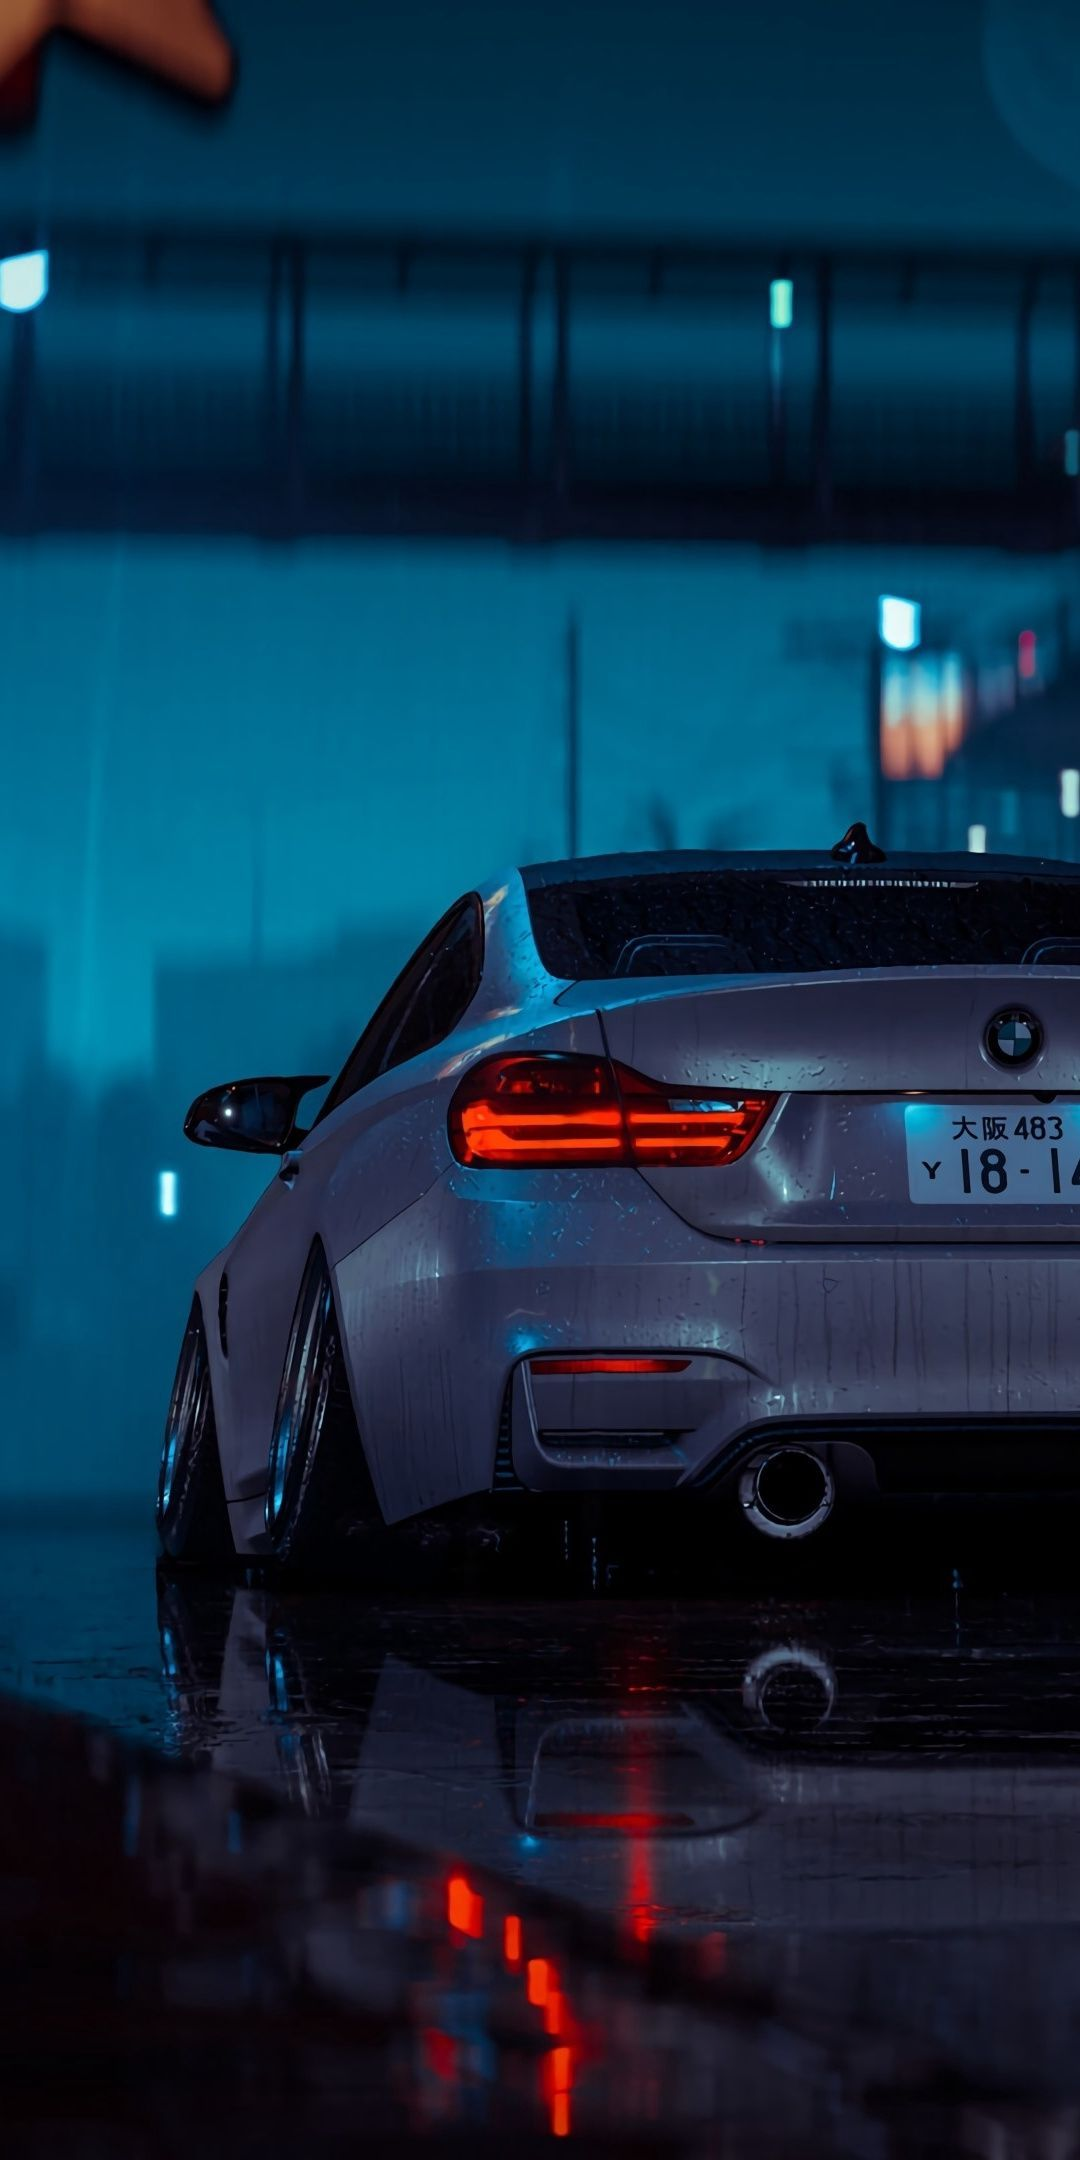 1080x2160 Artwork Car Gray Wet Weather Night Wallpaper In 2020 Bmw Wallpapers Dream Cars Bmw Bmw M4